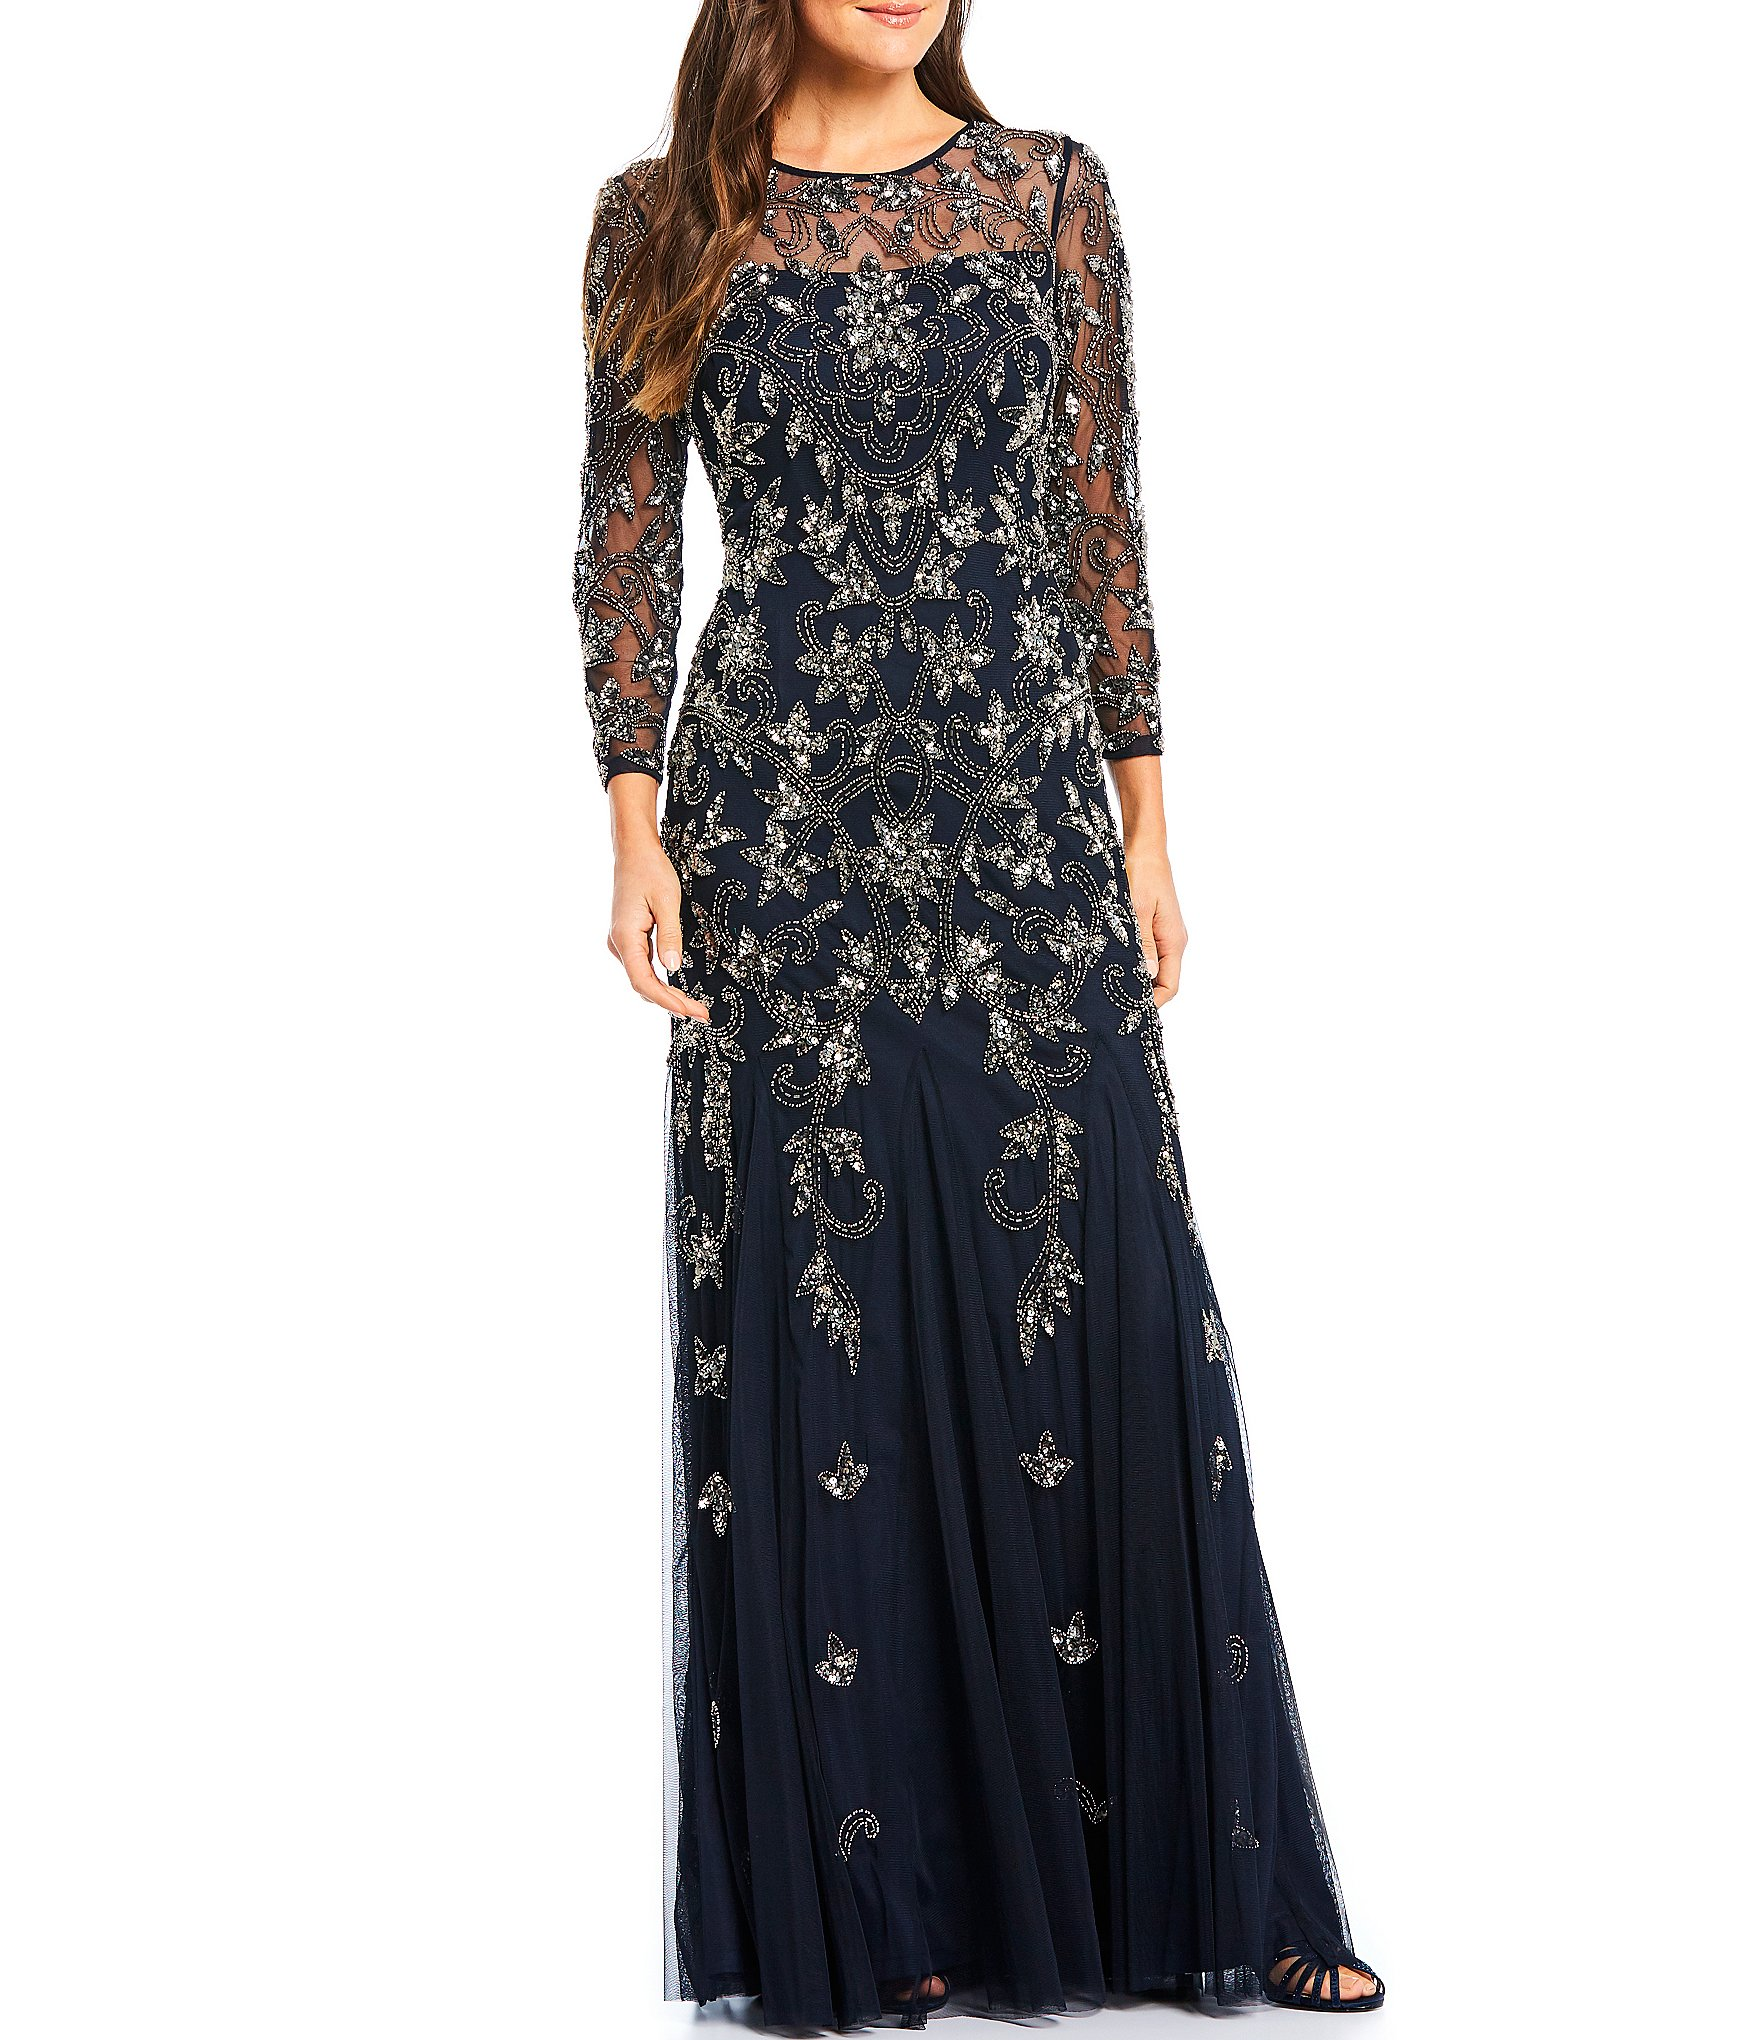 Women's Formal Dresses \u0026 Evening Gowns